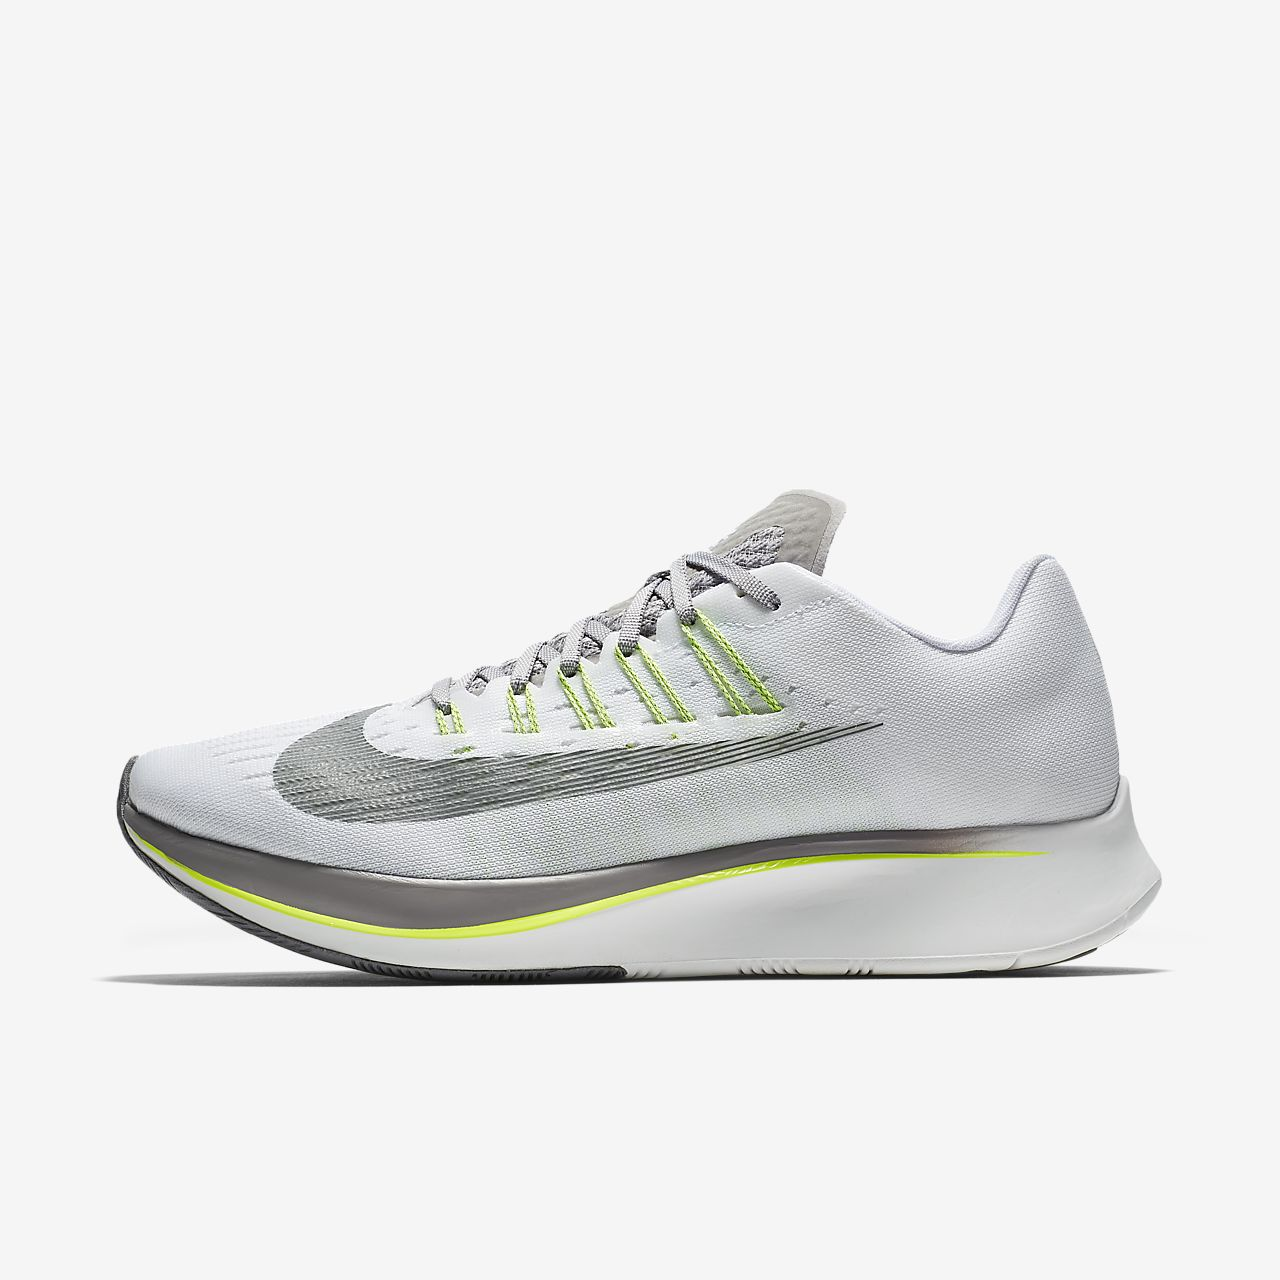 475e61e47d03 Nike Zoom Fly Men s Running Shoe. Nike.com